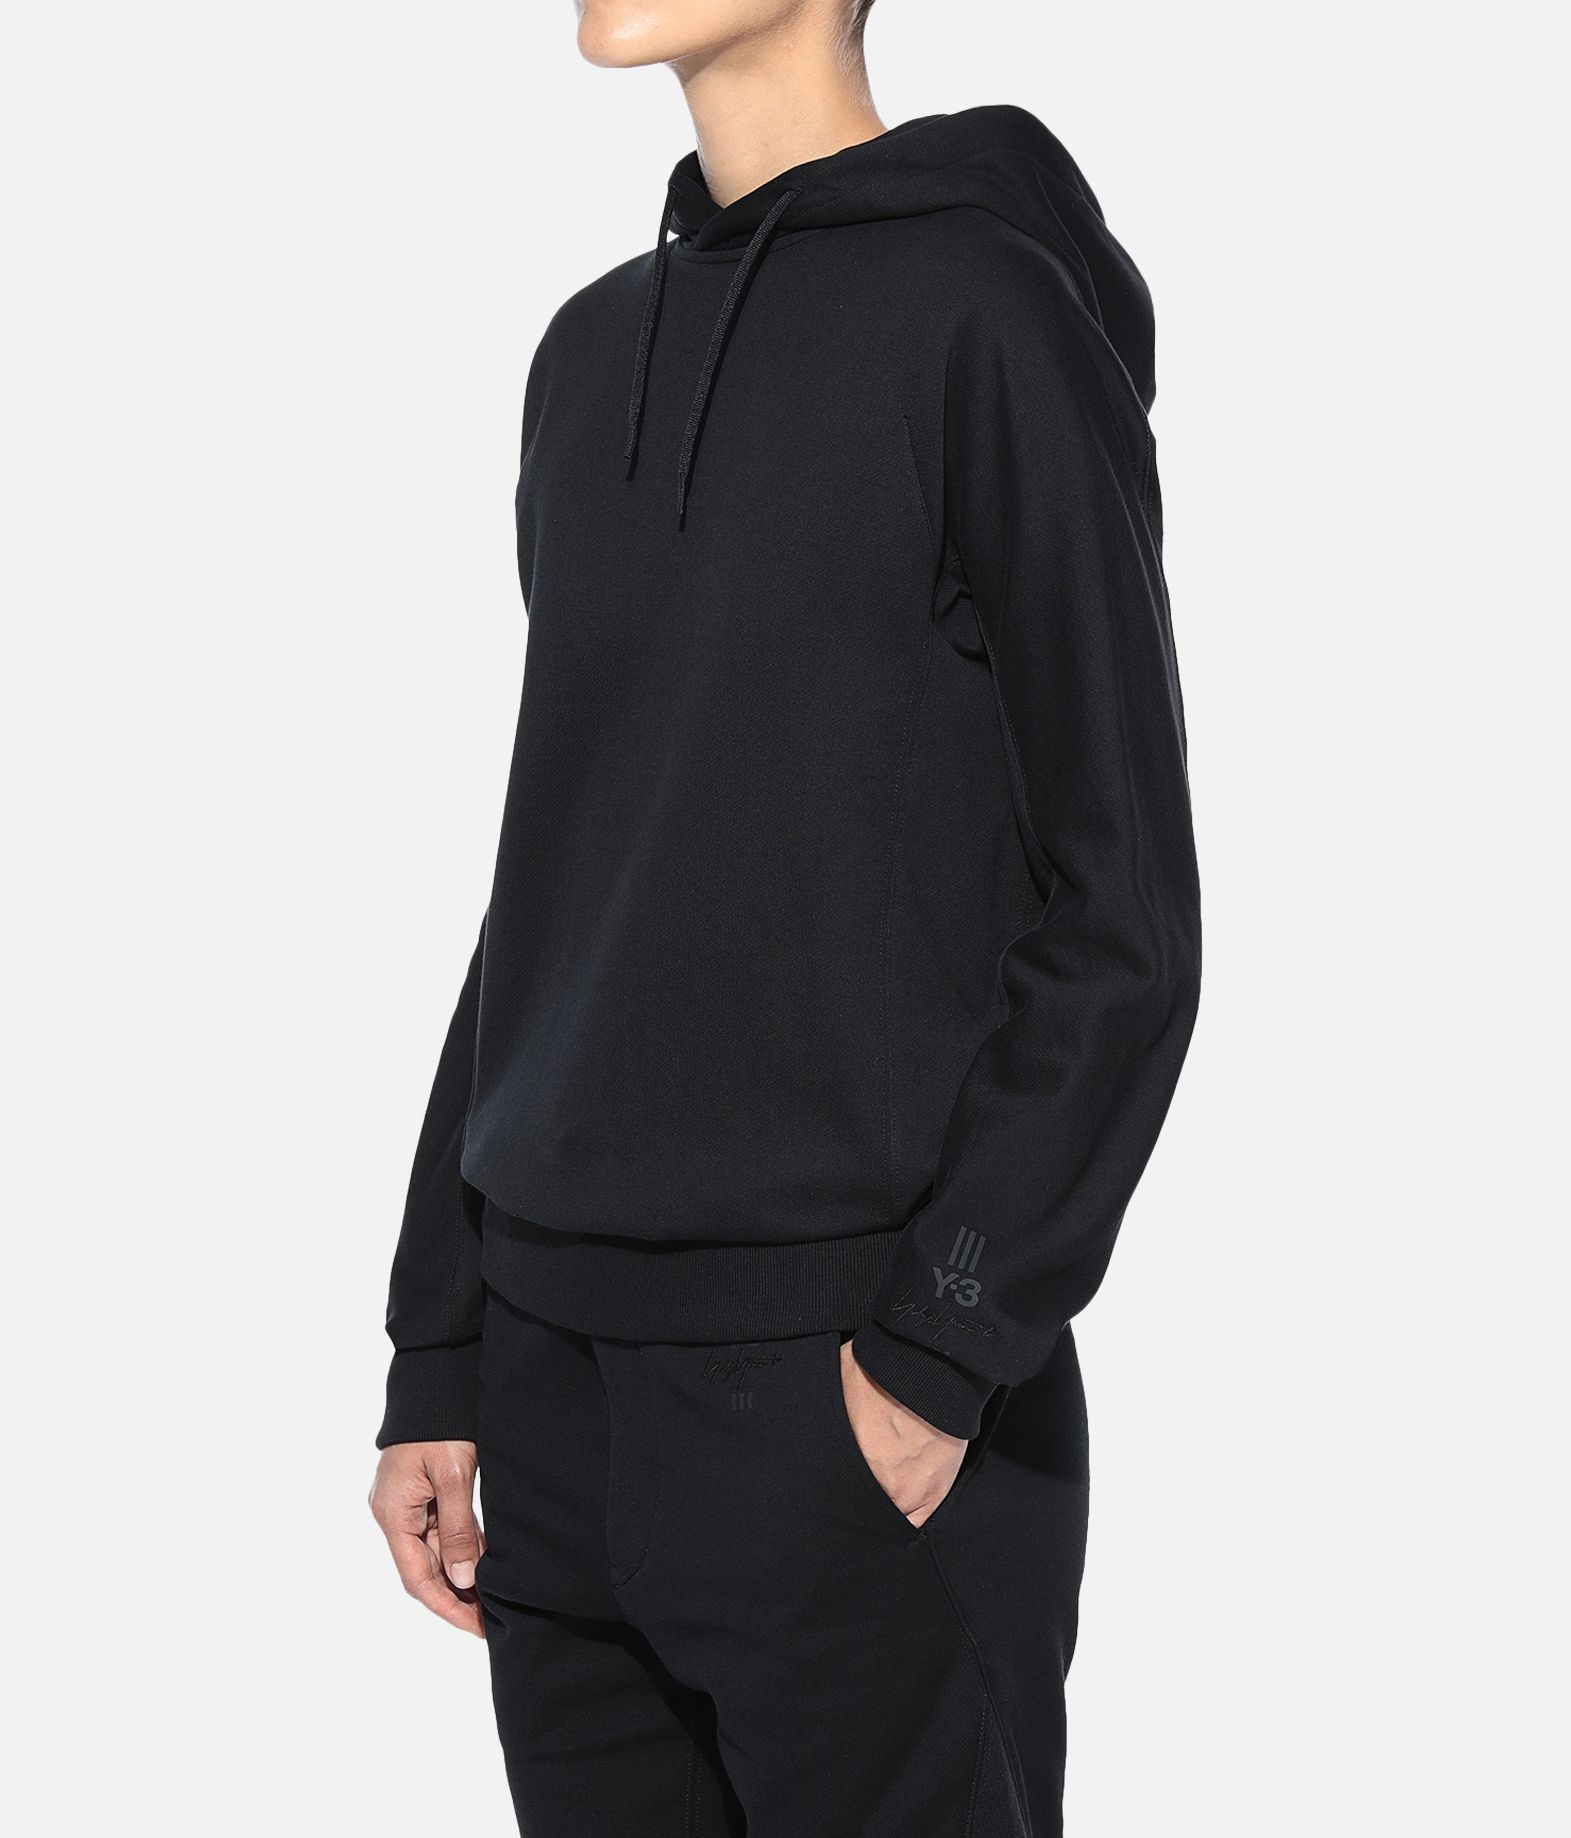 Y-3 Y-3 Classic Hoodie Hooded sweatshirt Woman e